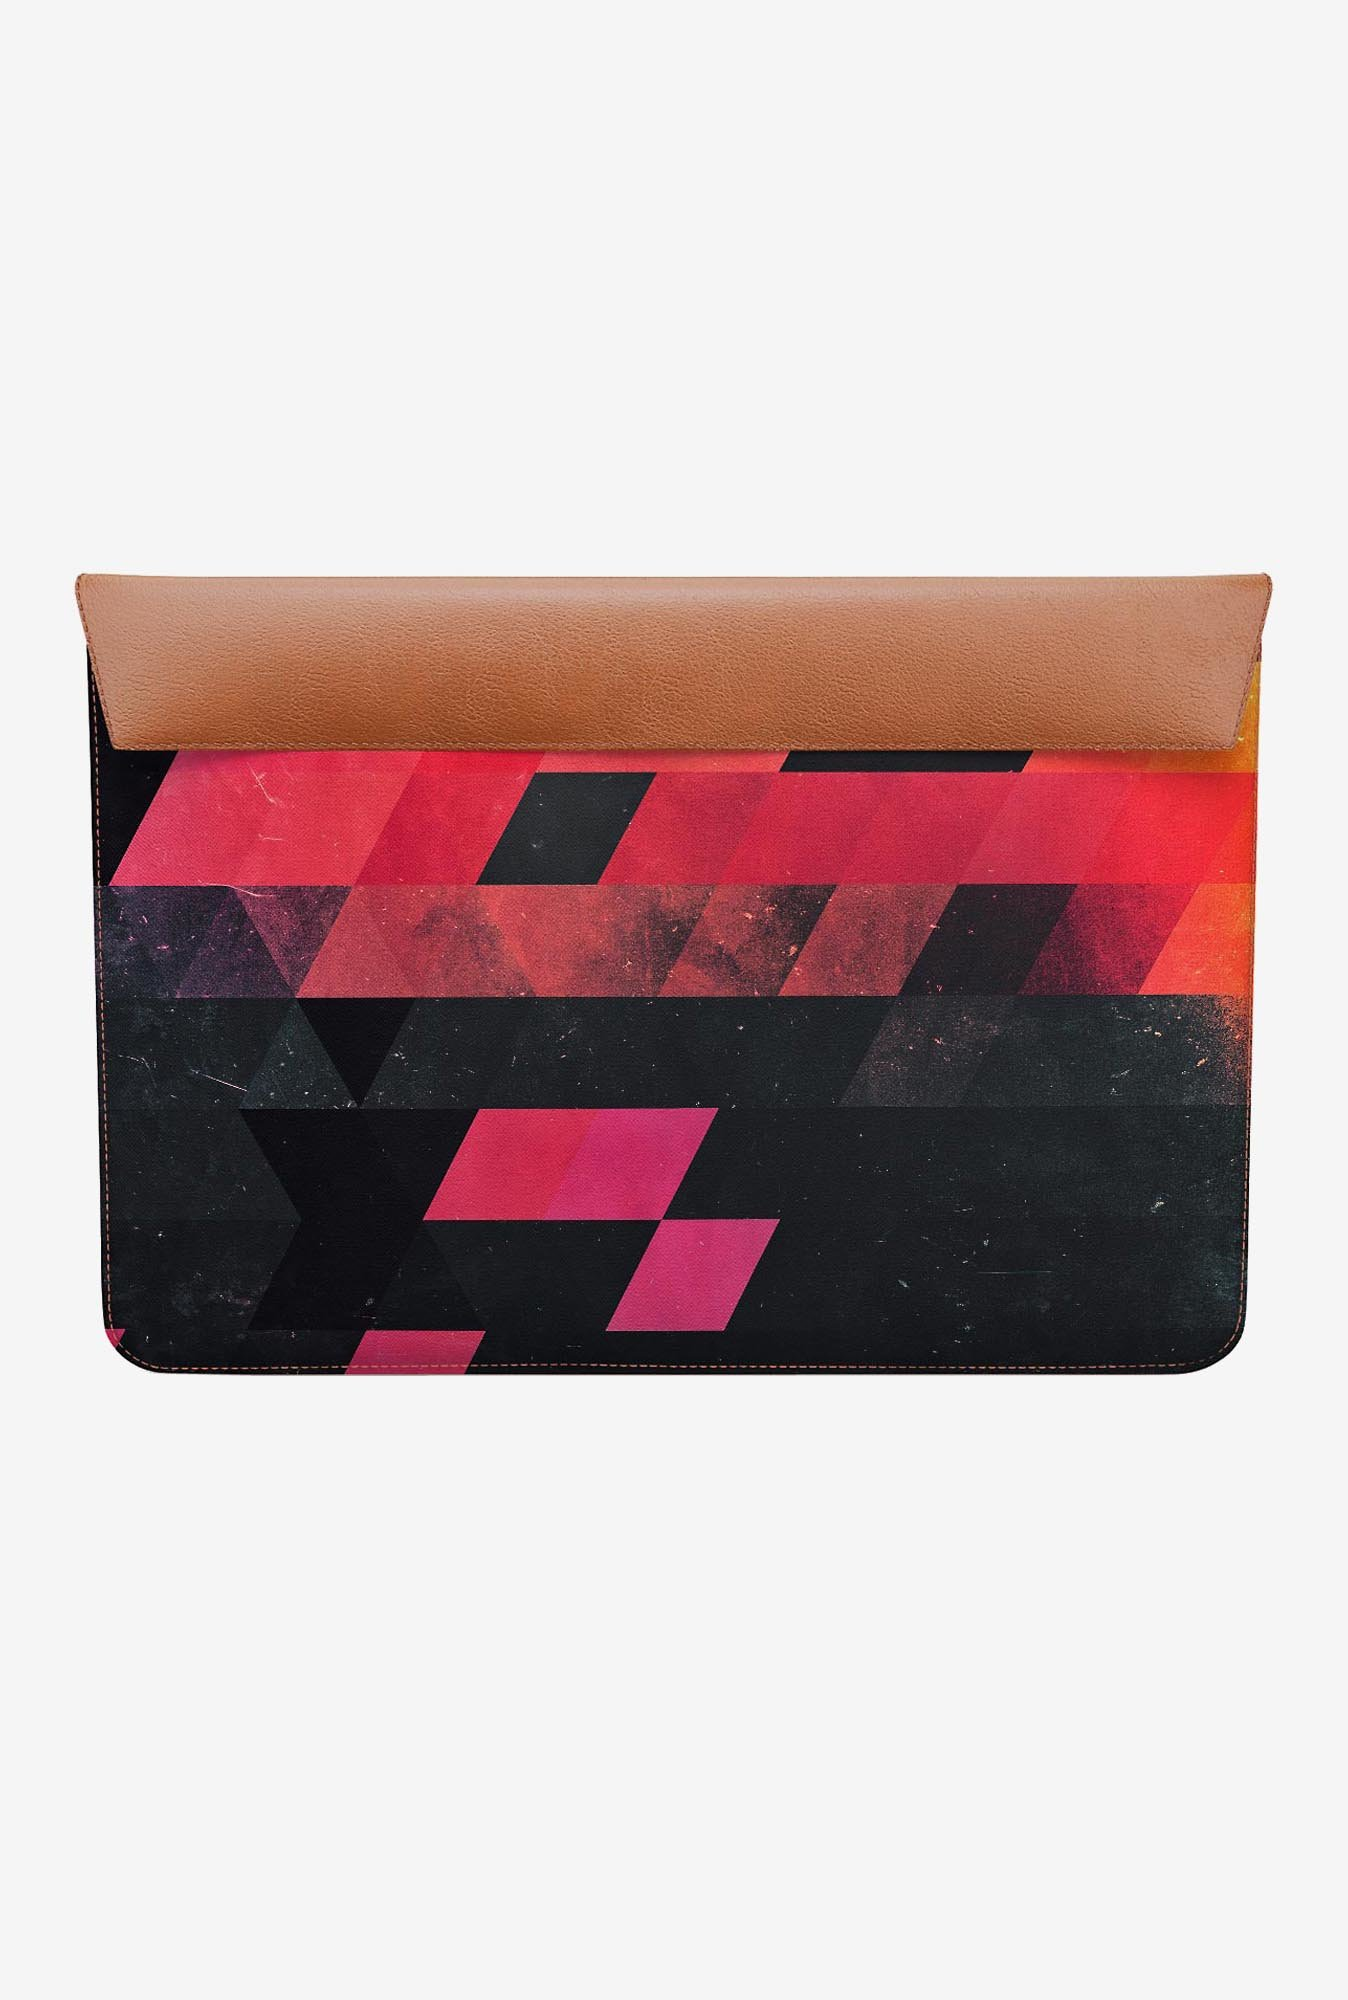 DailyObjects Ylmyst Tyme MacBook Pro 13 Envelope Sleeve